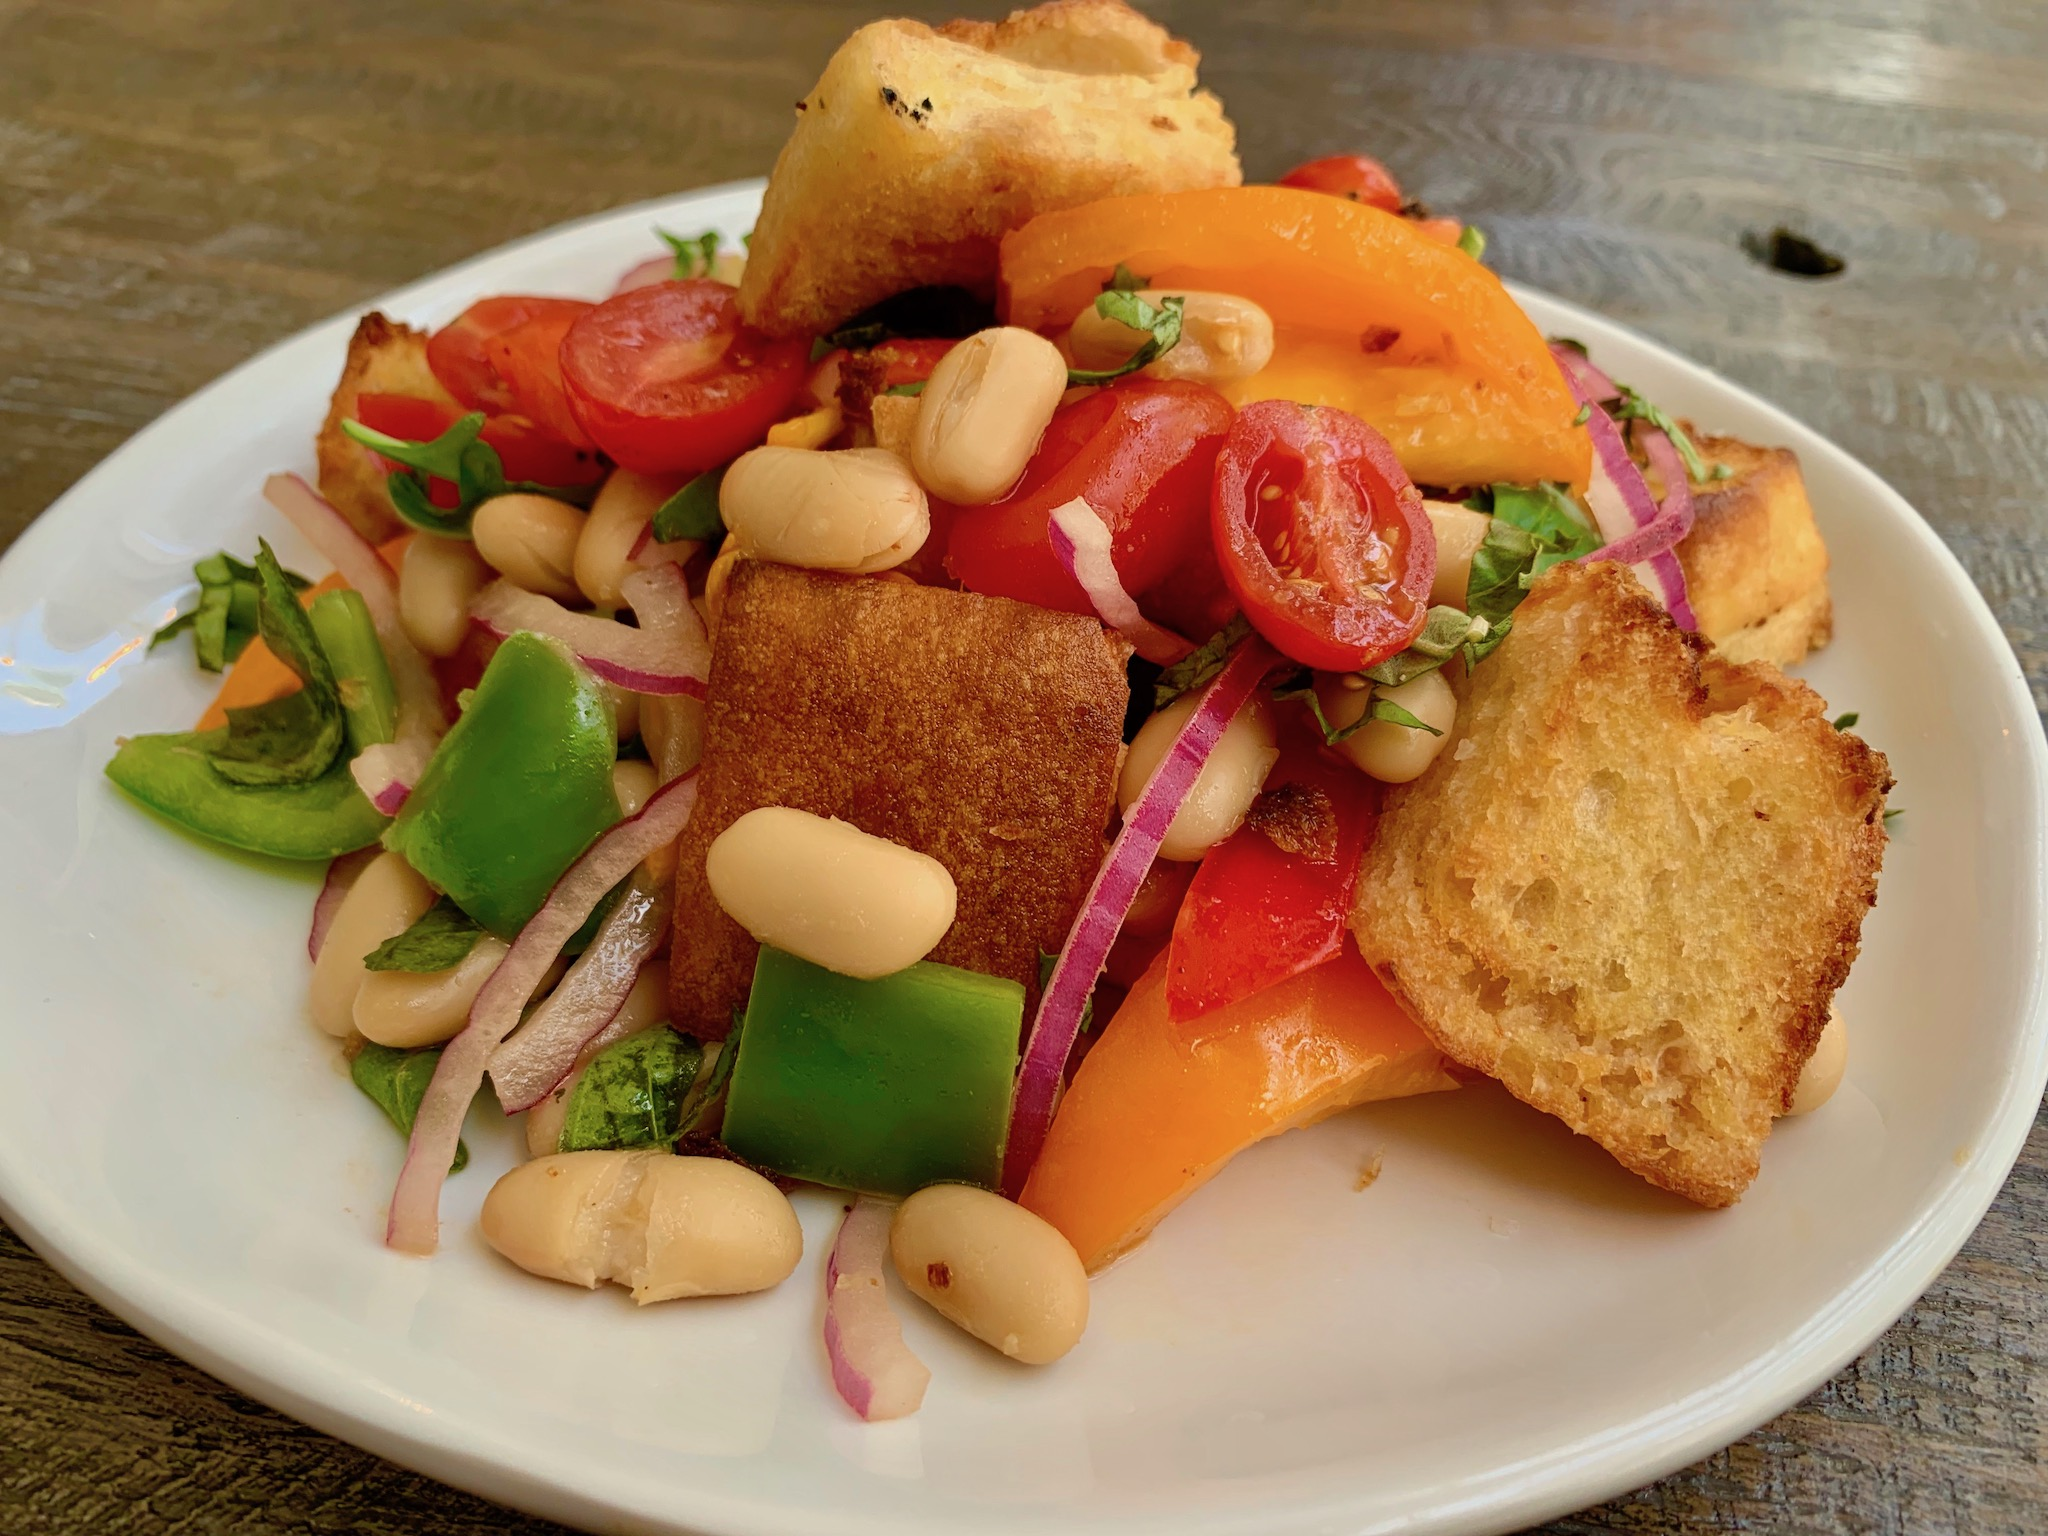 Vegan Panzanella Salad at Bacchus Brunch